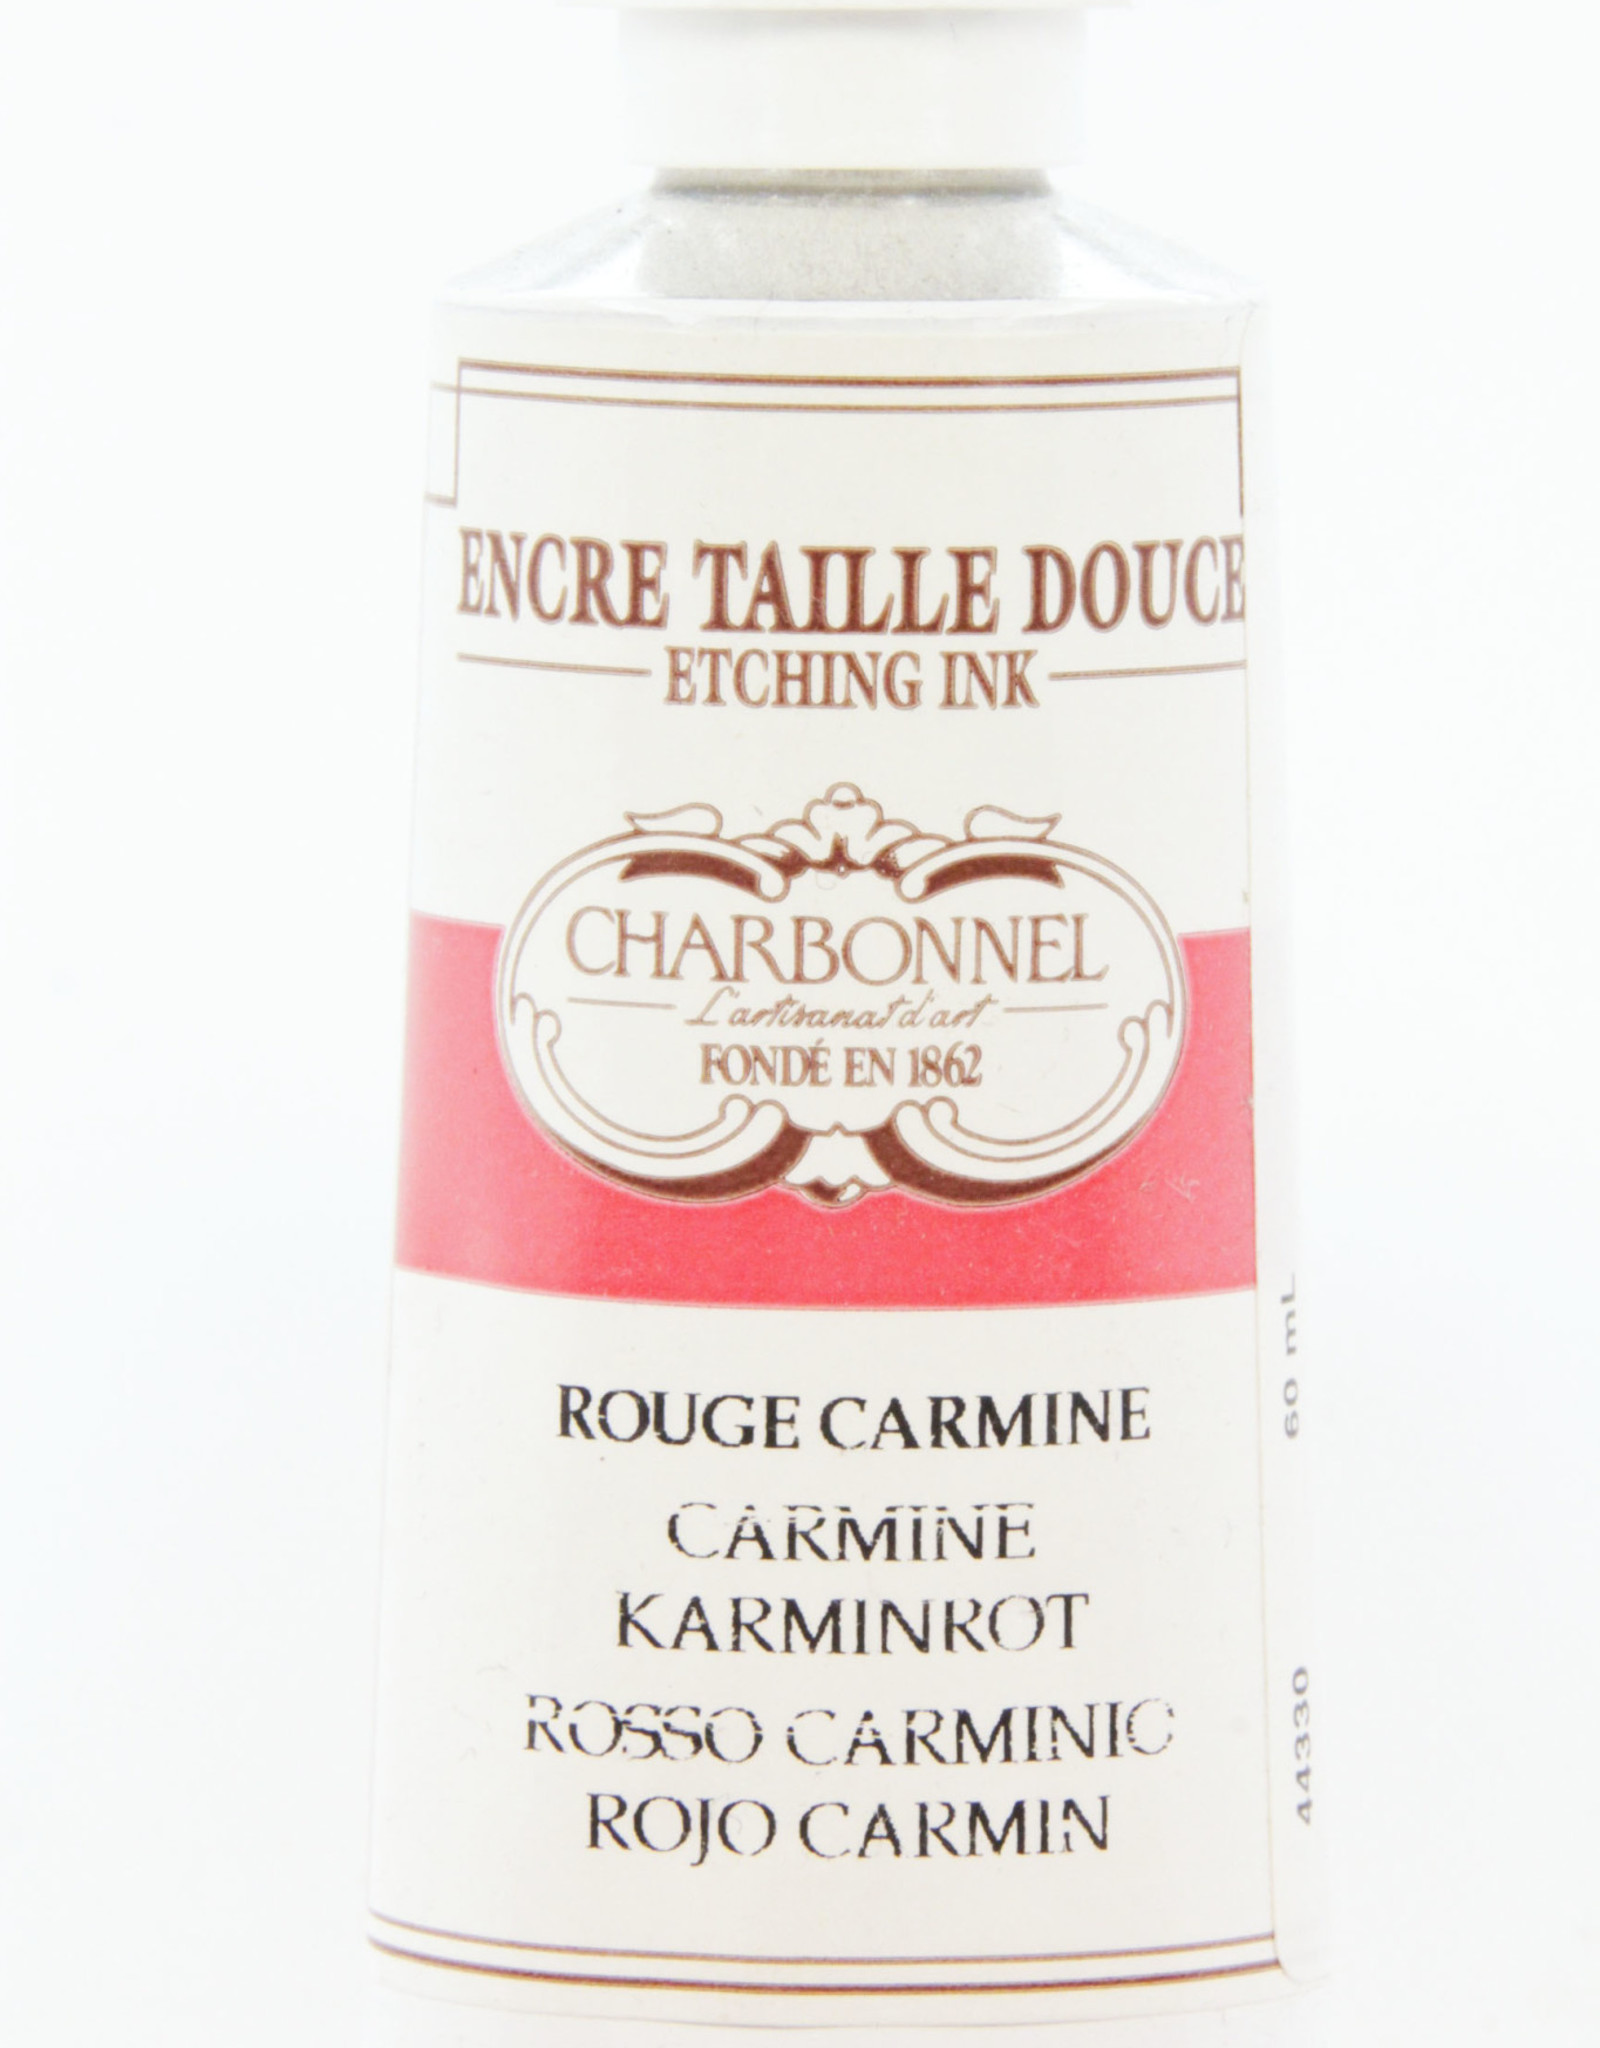 Charbonnel, Etching Ink, Carmine Red, Series 5, 60ml, Tube